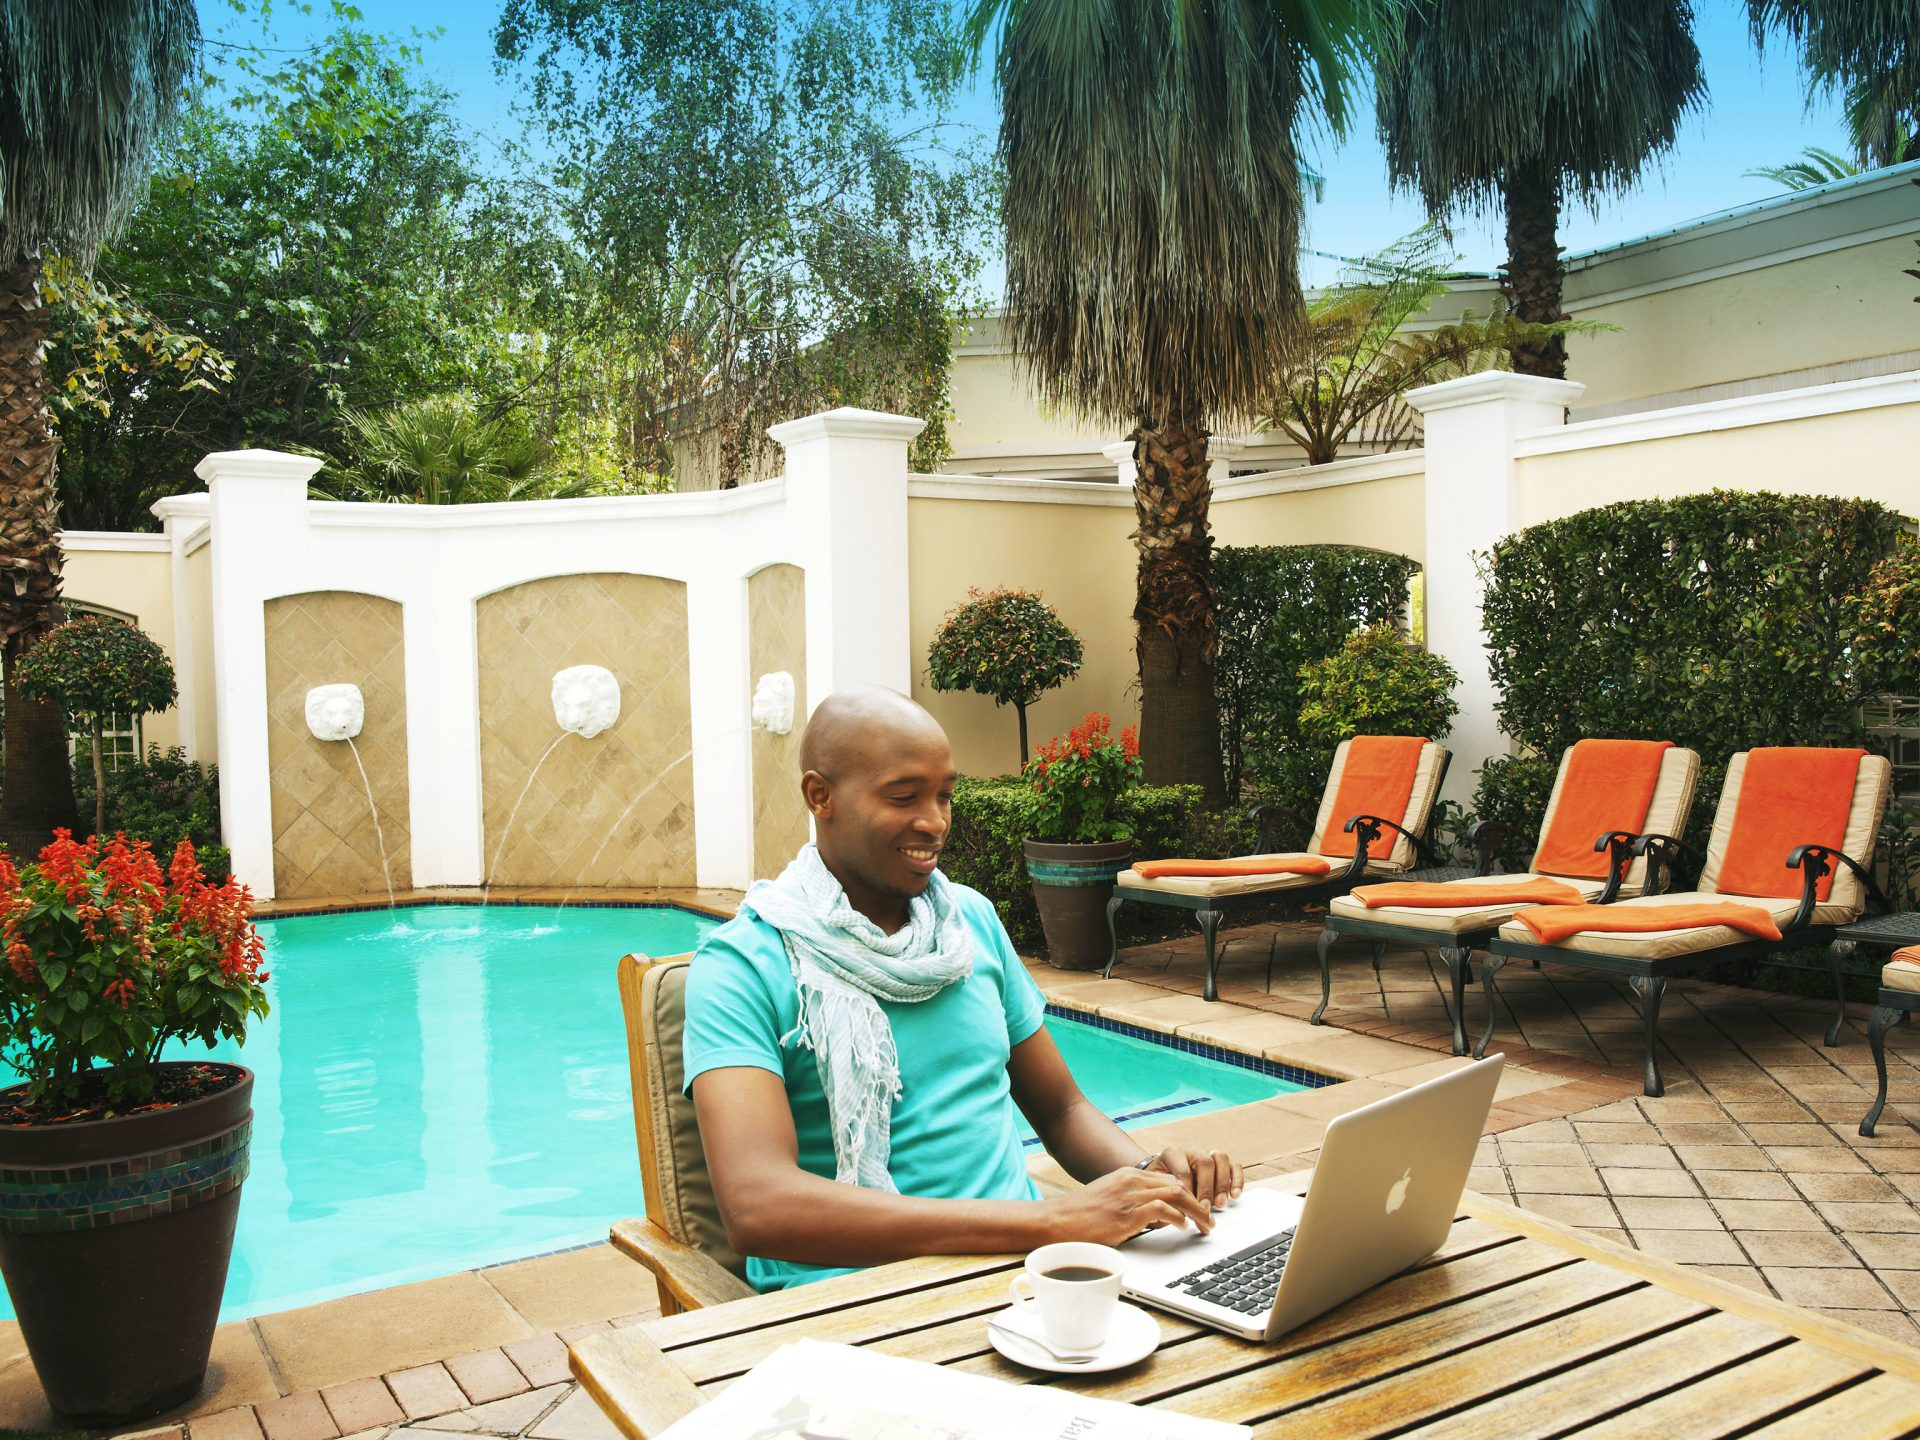 Man at pool side working on laptop